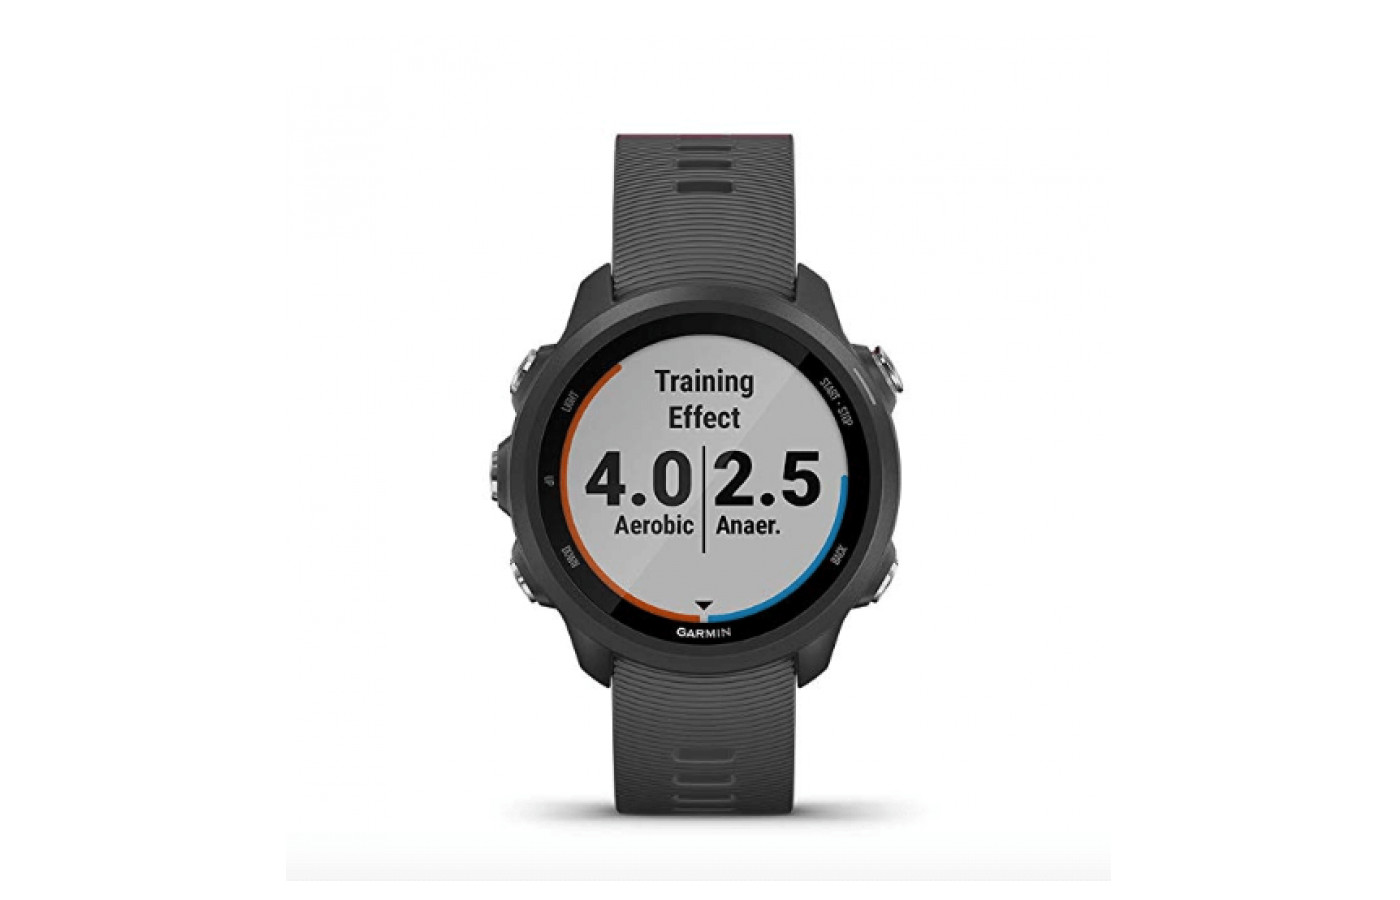 The Forerunner 245 has tracking features for running, cycling, and even swimming.